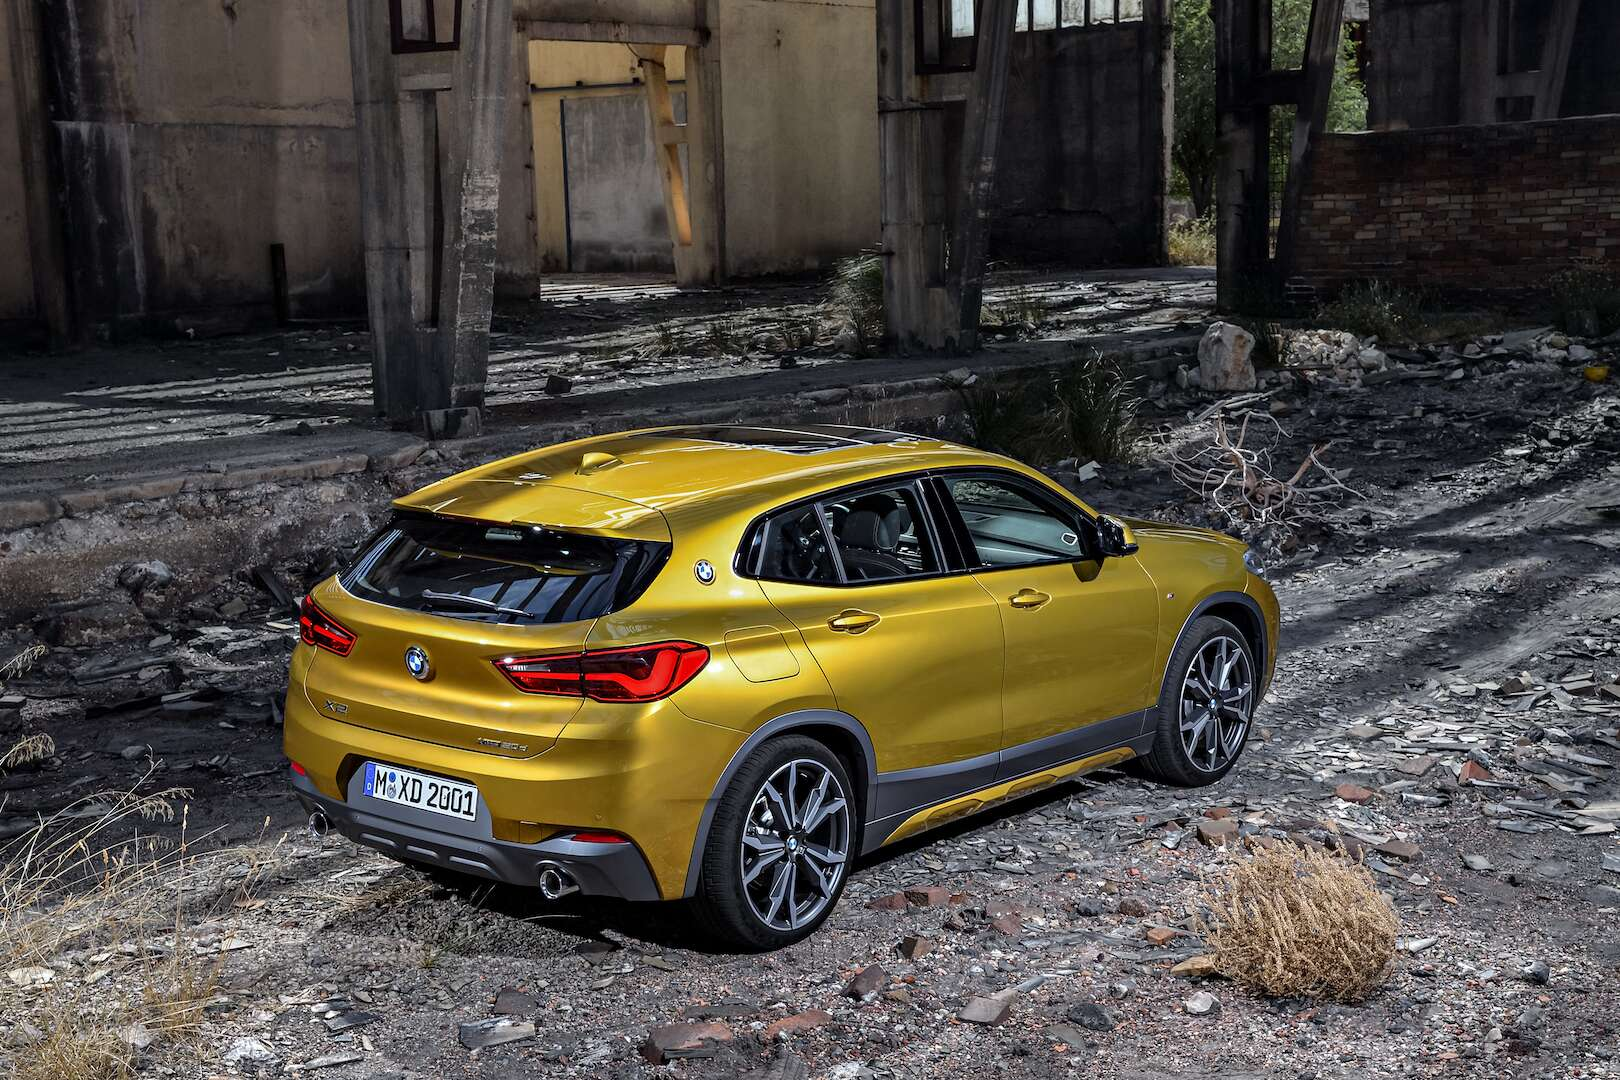 2018 Bmw X2 Review With This Crossover The Evolution Of The Suv Is